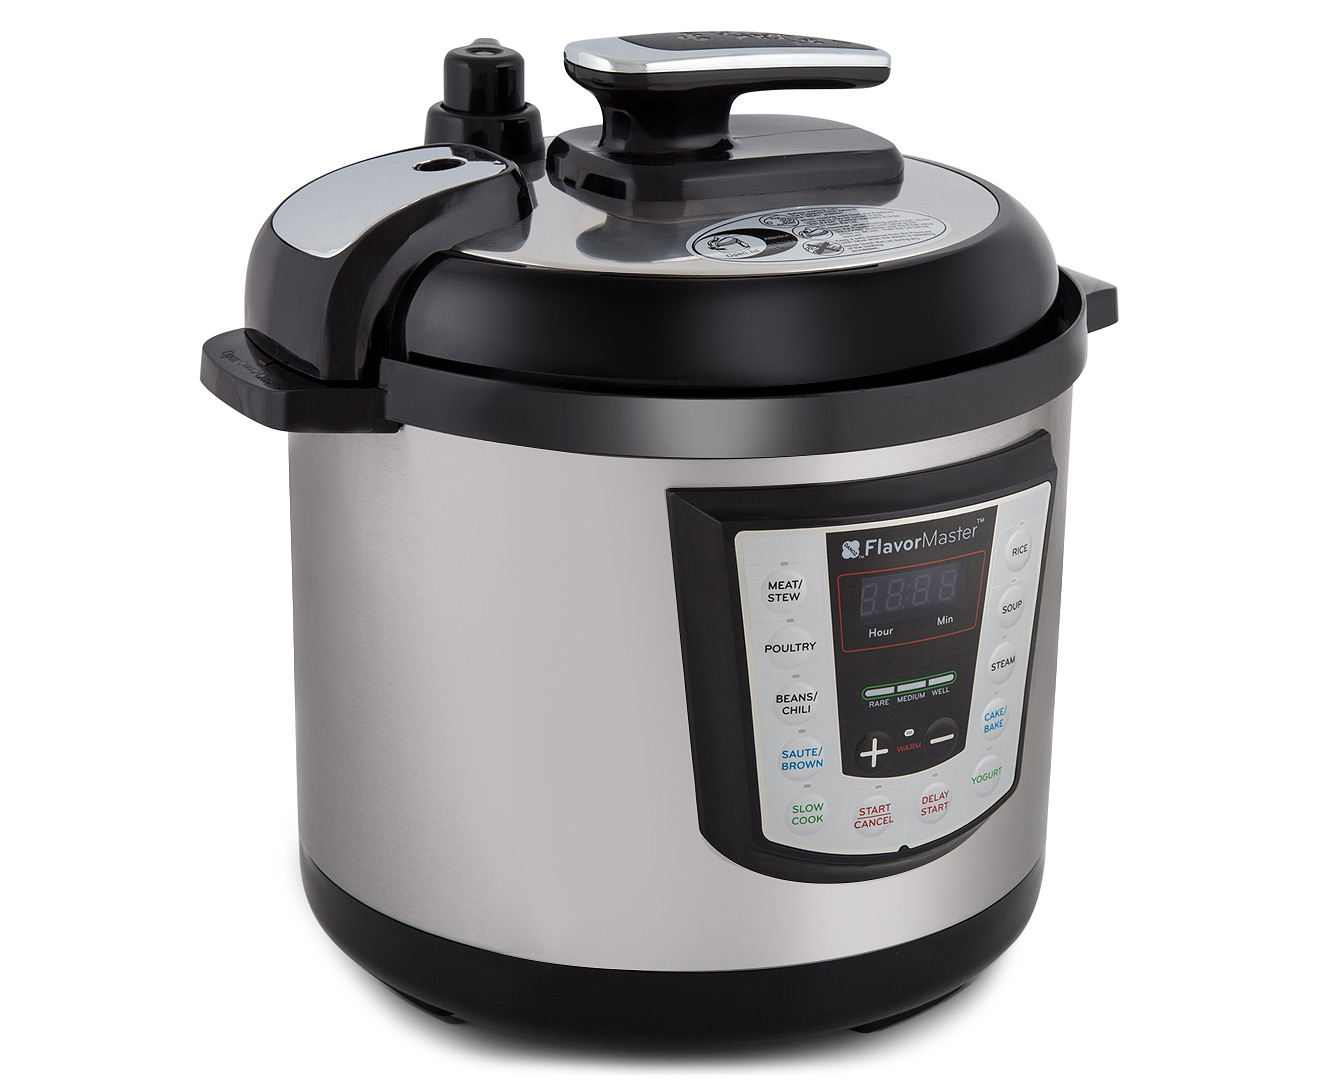 Sears Pressure Cooker FlavorMaster 10-in-1 Multifunction Cooker | Scoopon Shopping